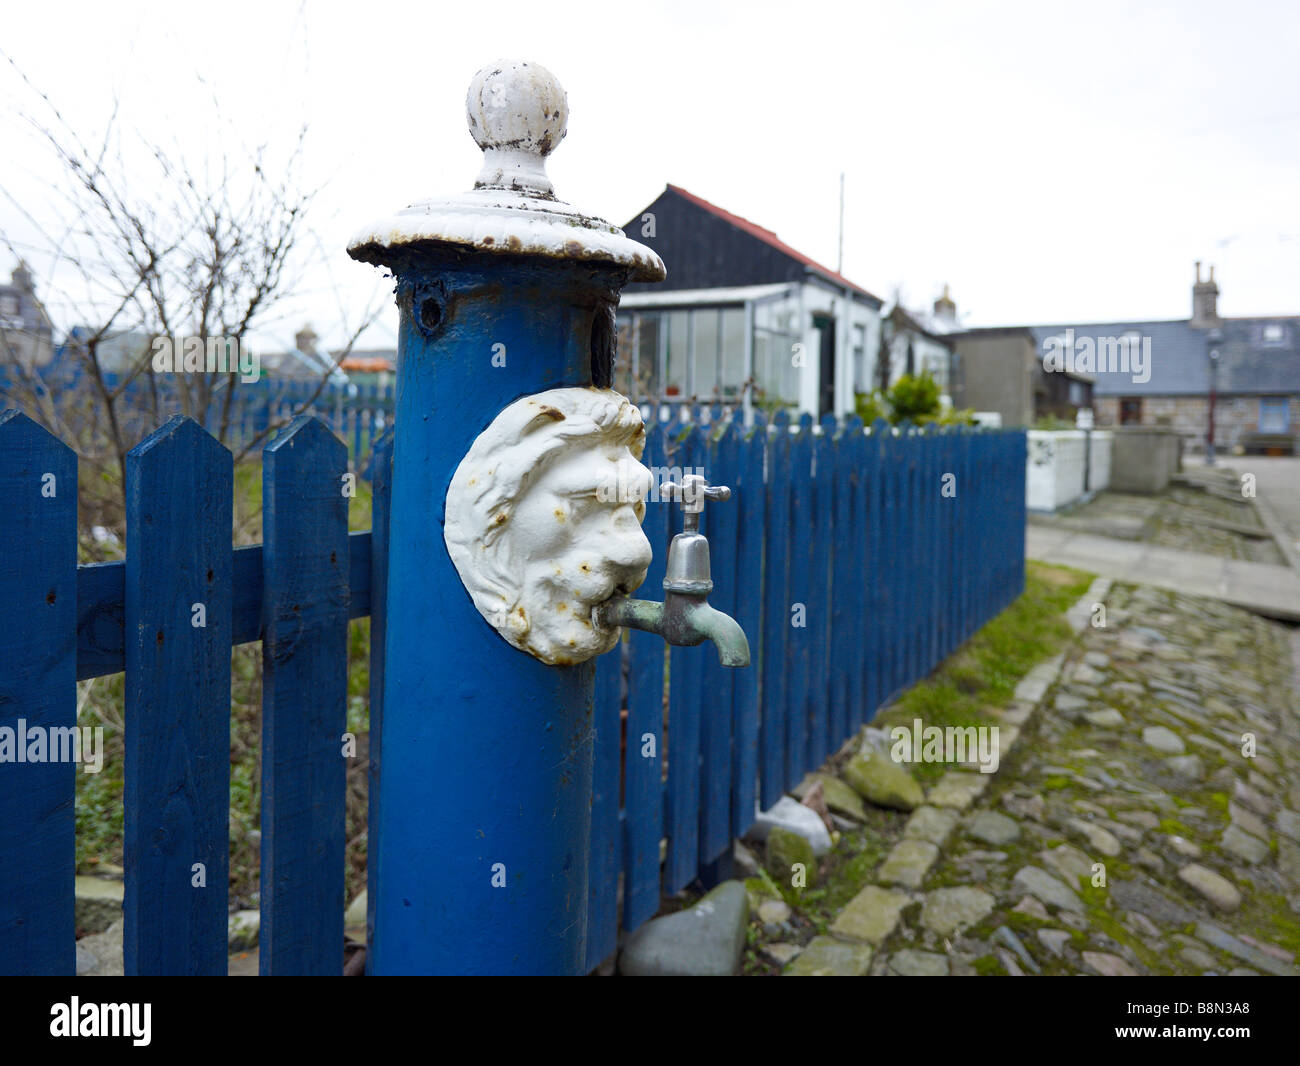 Ornate water tap with a lion's head at the village of Foodee, Aberdeen, Scotland - Stock Image